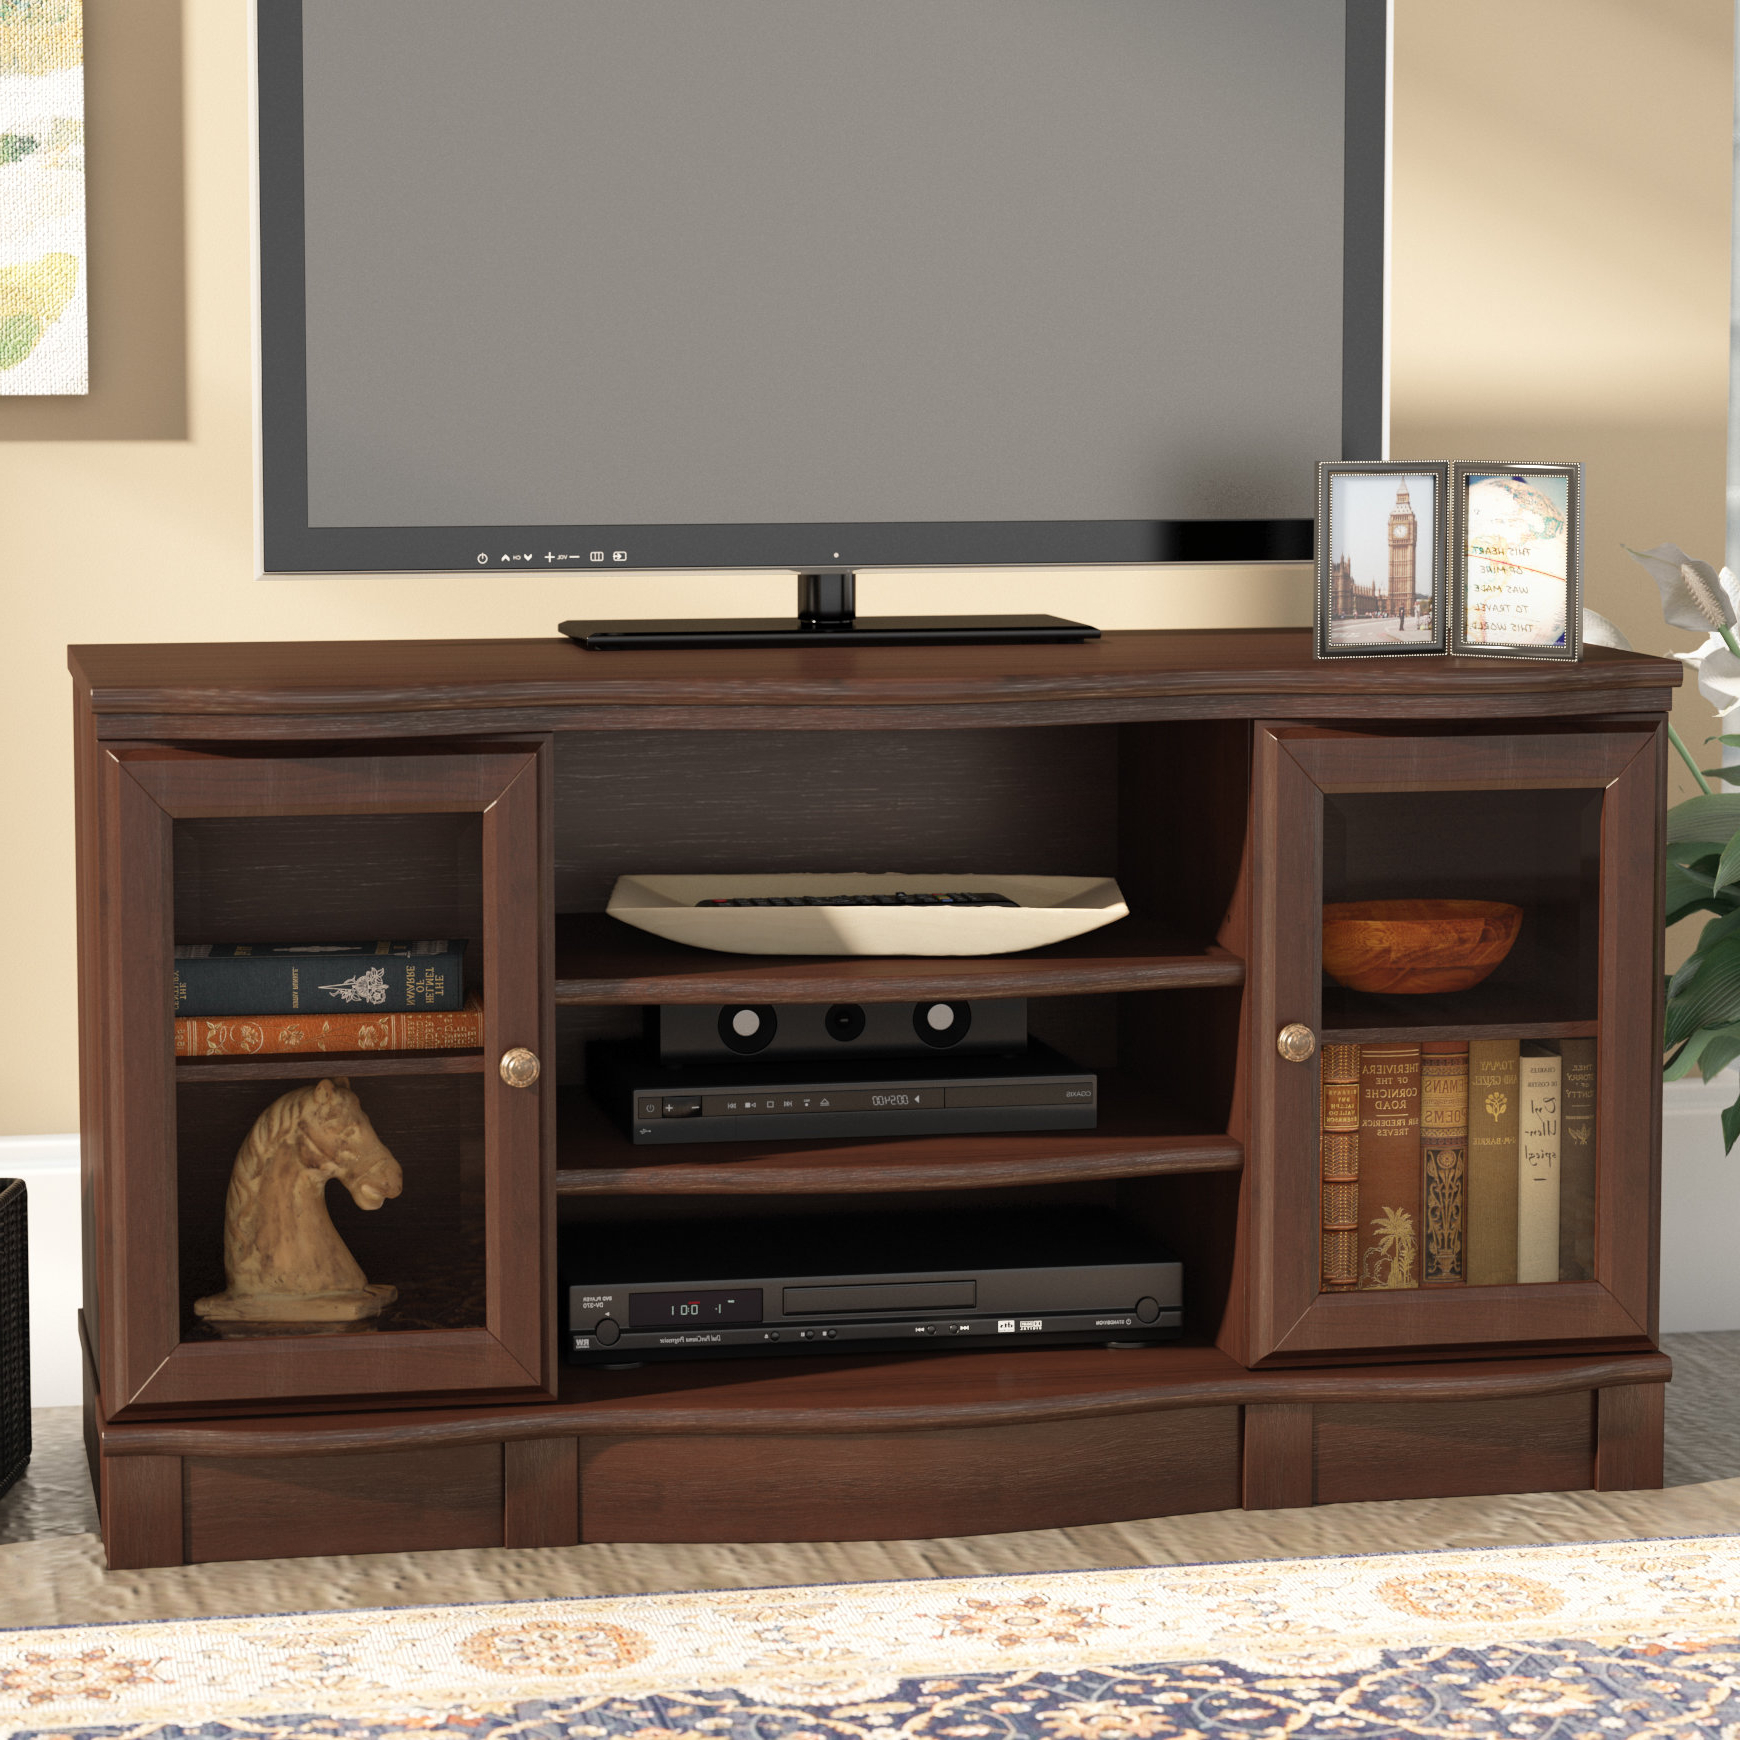 Tv Stand For 75 Inch Tv | Wayfair Pertaining To Laurent 70 Inch Tv Stands (Gallery 16 of 20)